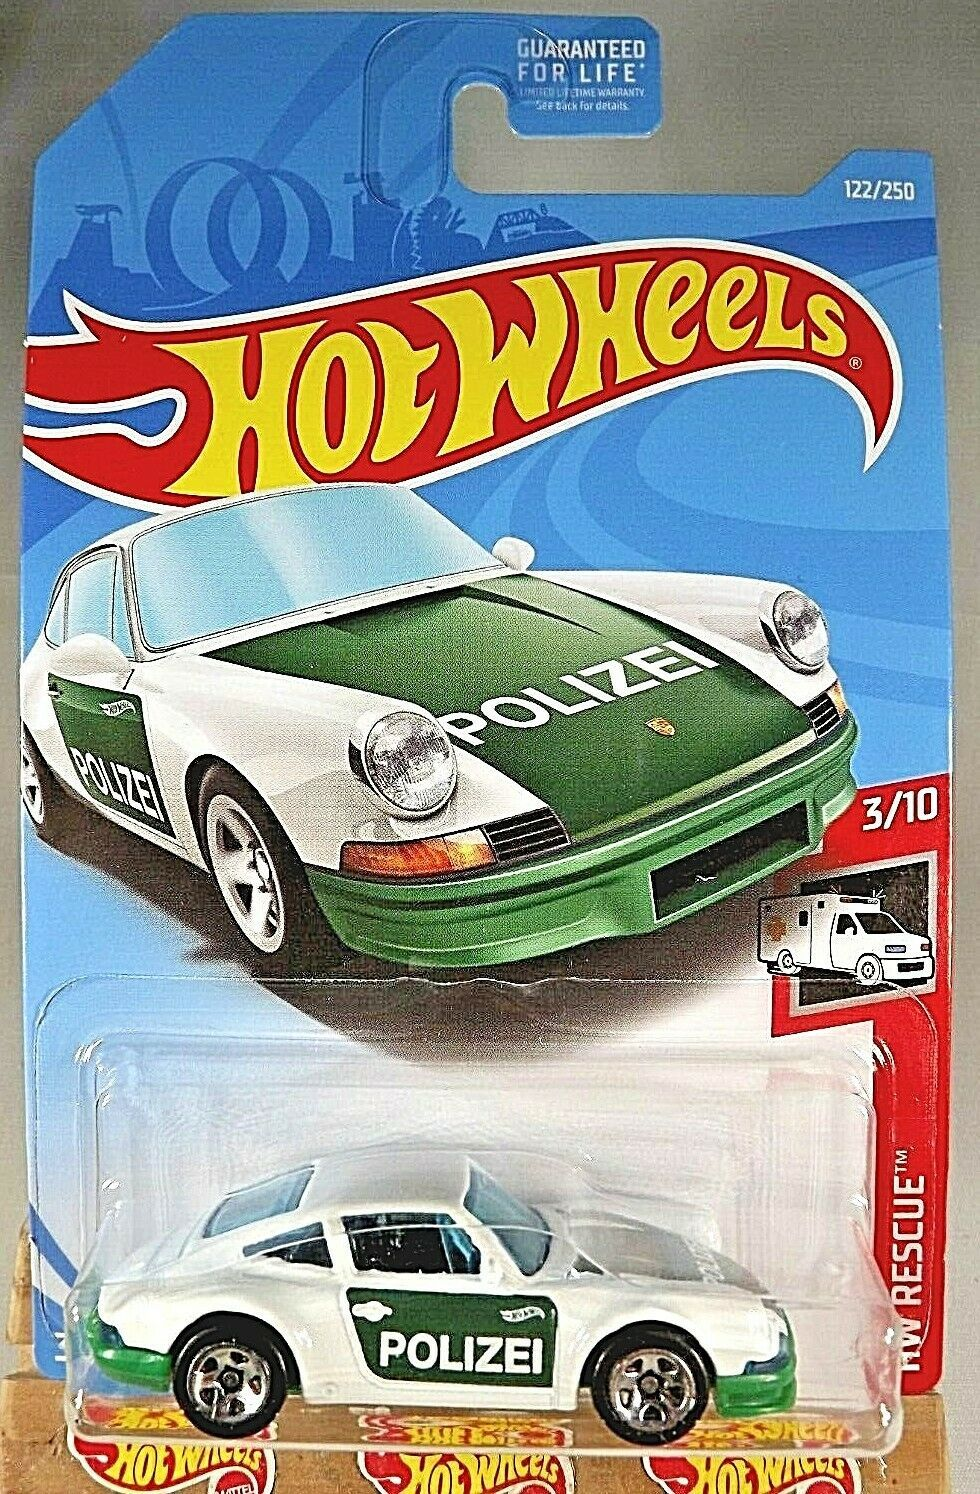 2019 hot wheels 122 hw rescue police 39 71 porsche 911 white green w 5 spokes contemporary. Black Bedroom Furniture Sets. Home Design Ideas